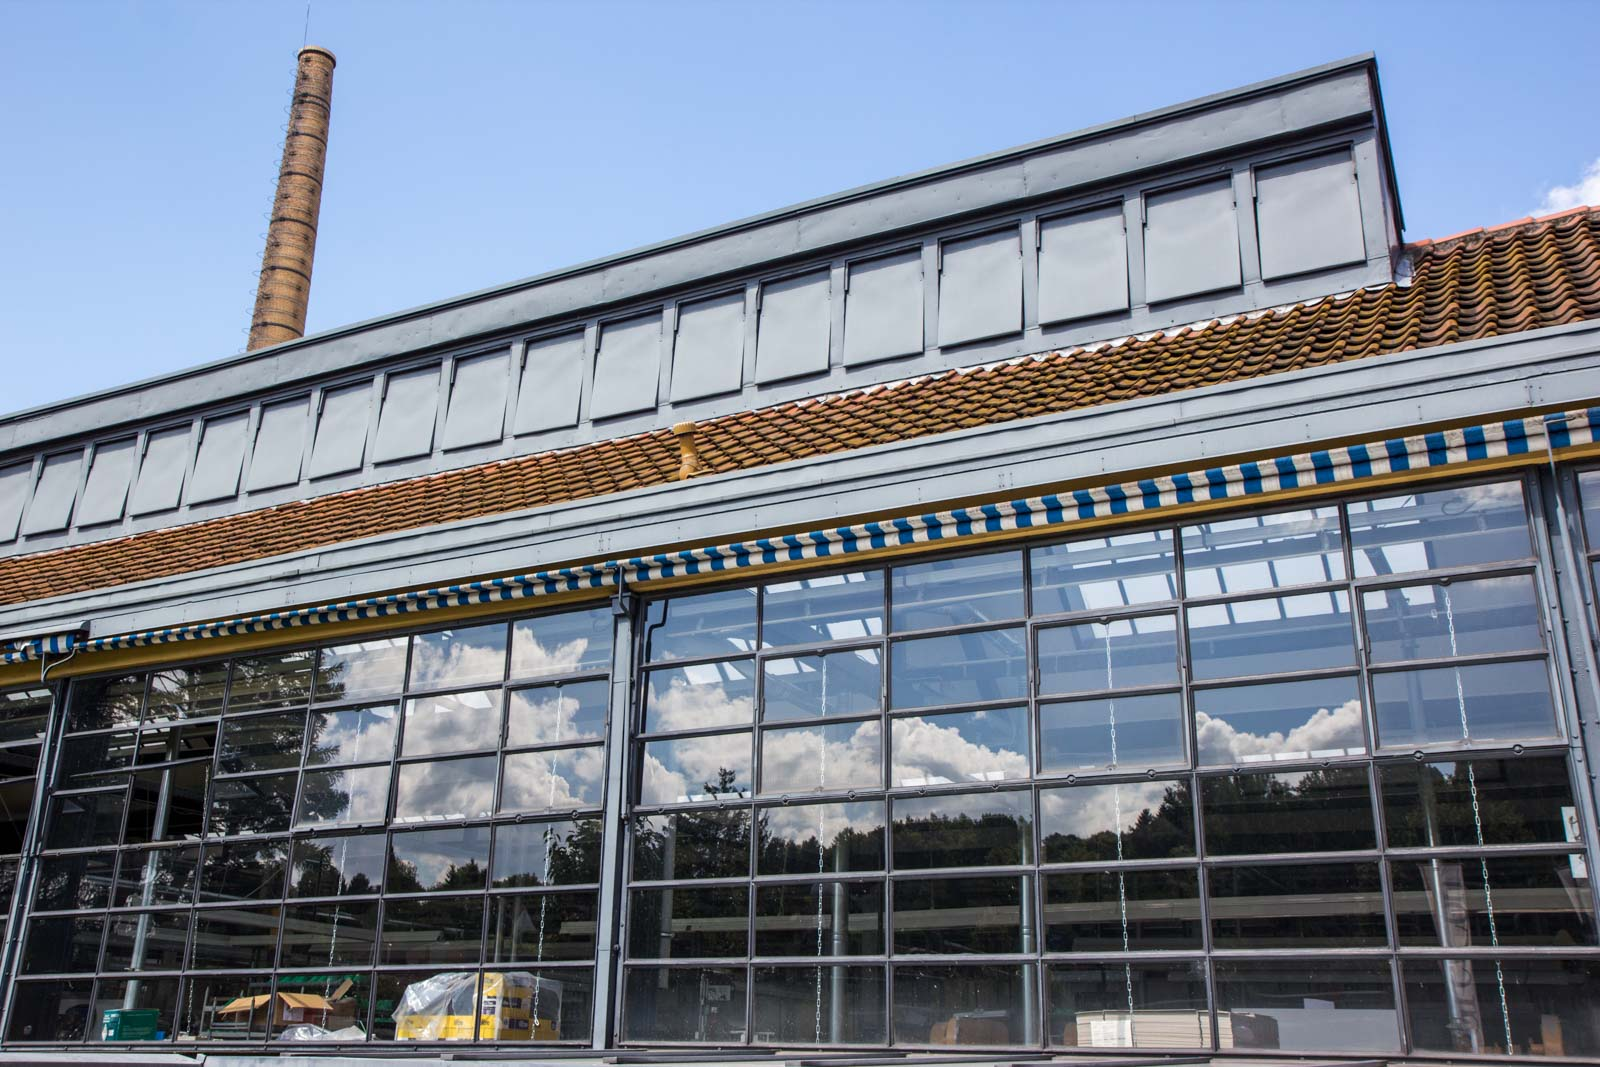 Fagus Factory, Alfeld, Germany